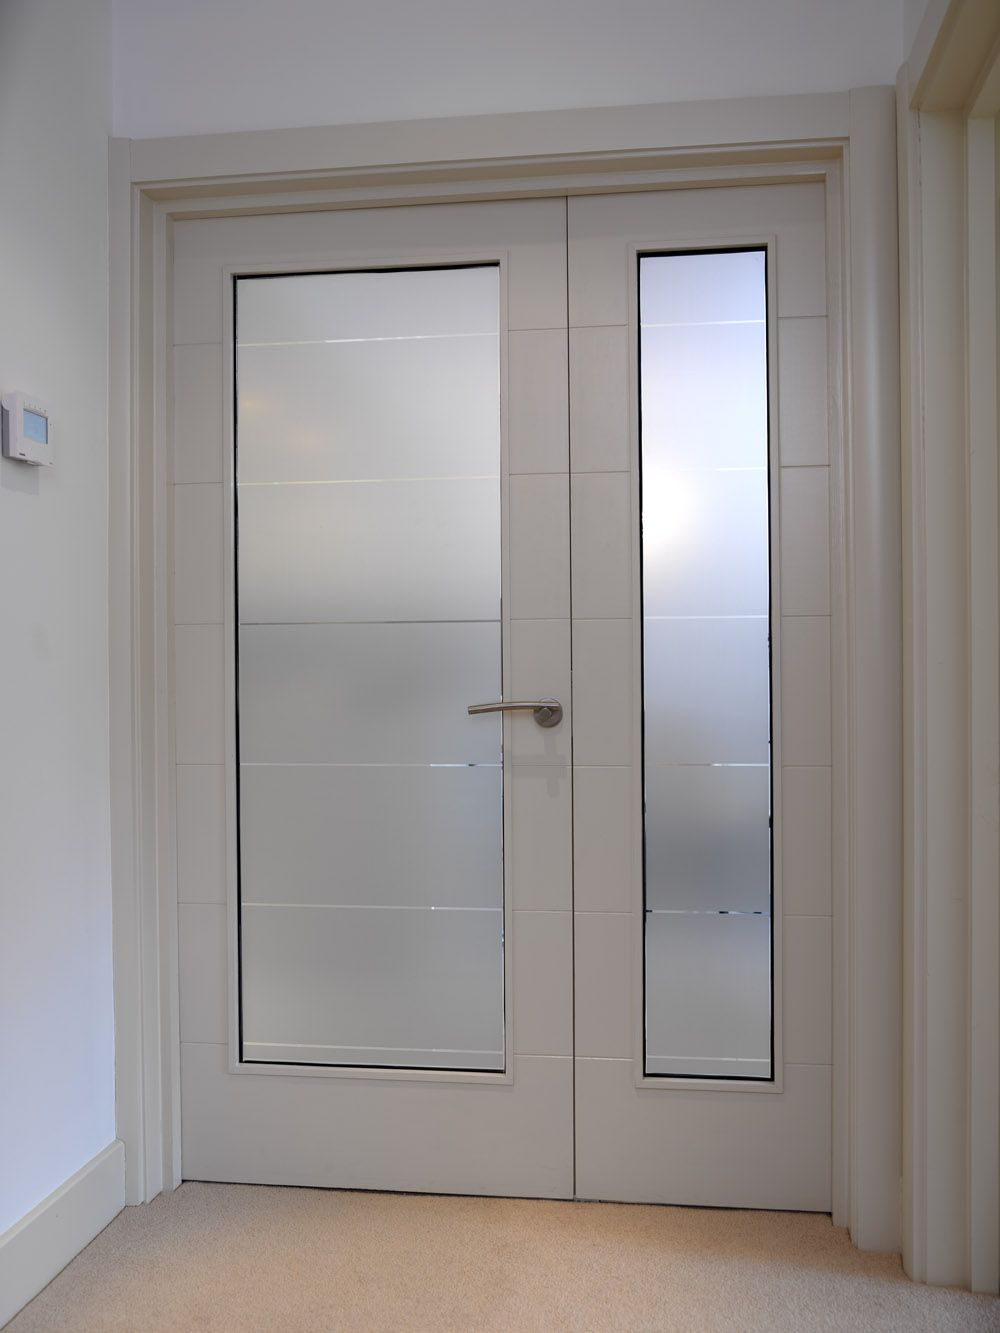 Stunning white glazed doors with frosted glass and horizontal stunning white glazed doors with frosted glass and horizontal grooves made bespoke by jb kind eventelaan Image collections